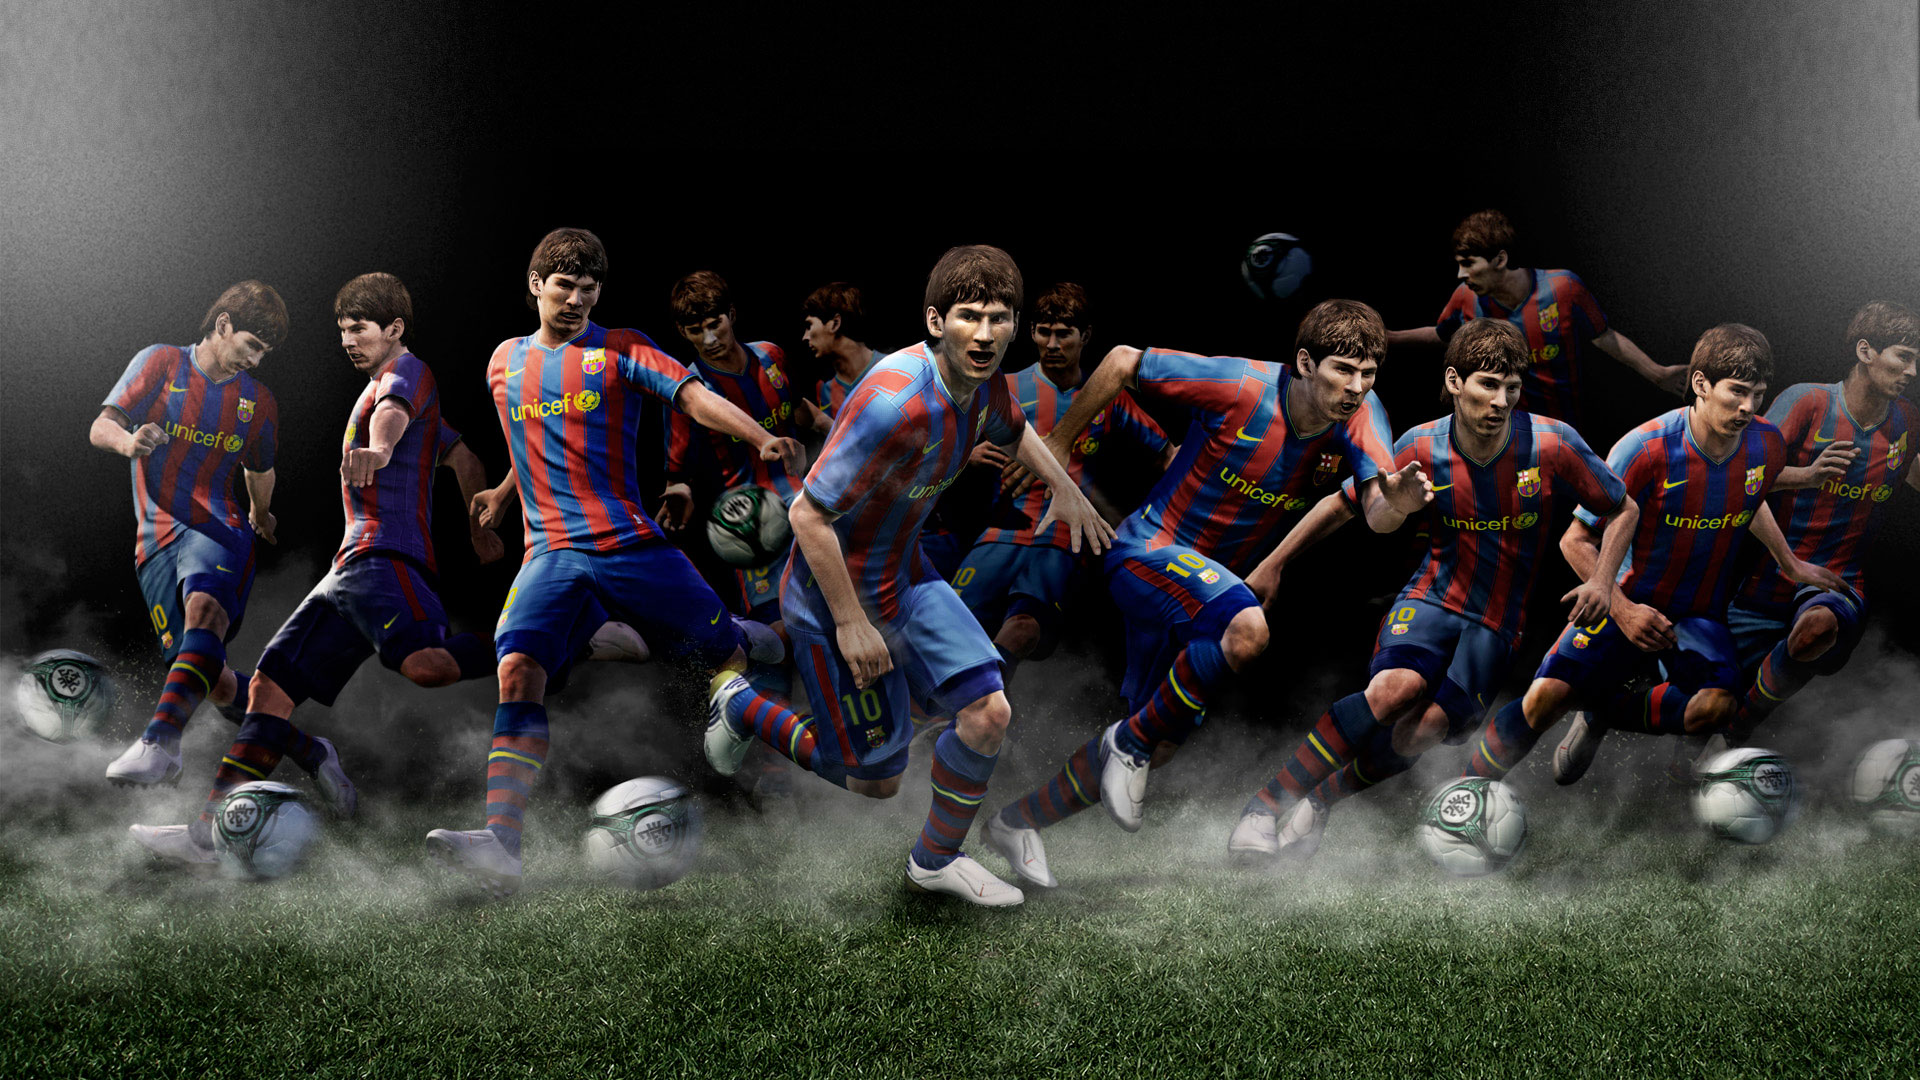 45 football hd wallpapers 1080p on wallpapersafari - 1366x768 is 720p or 1080p ...